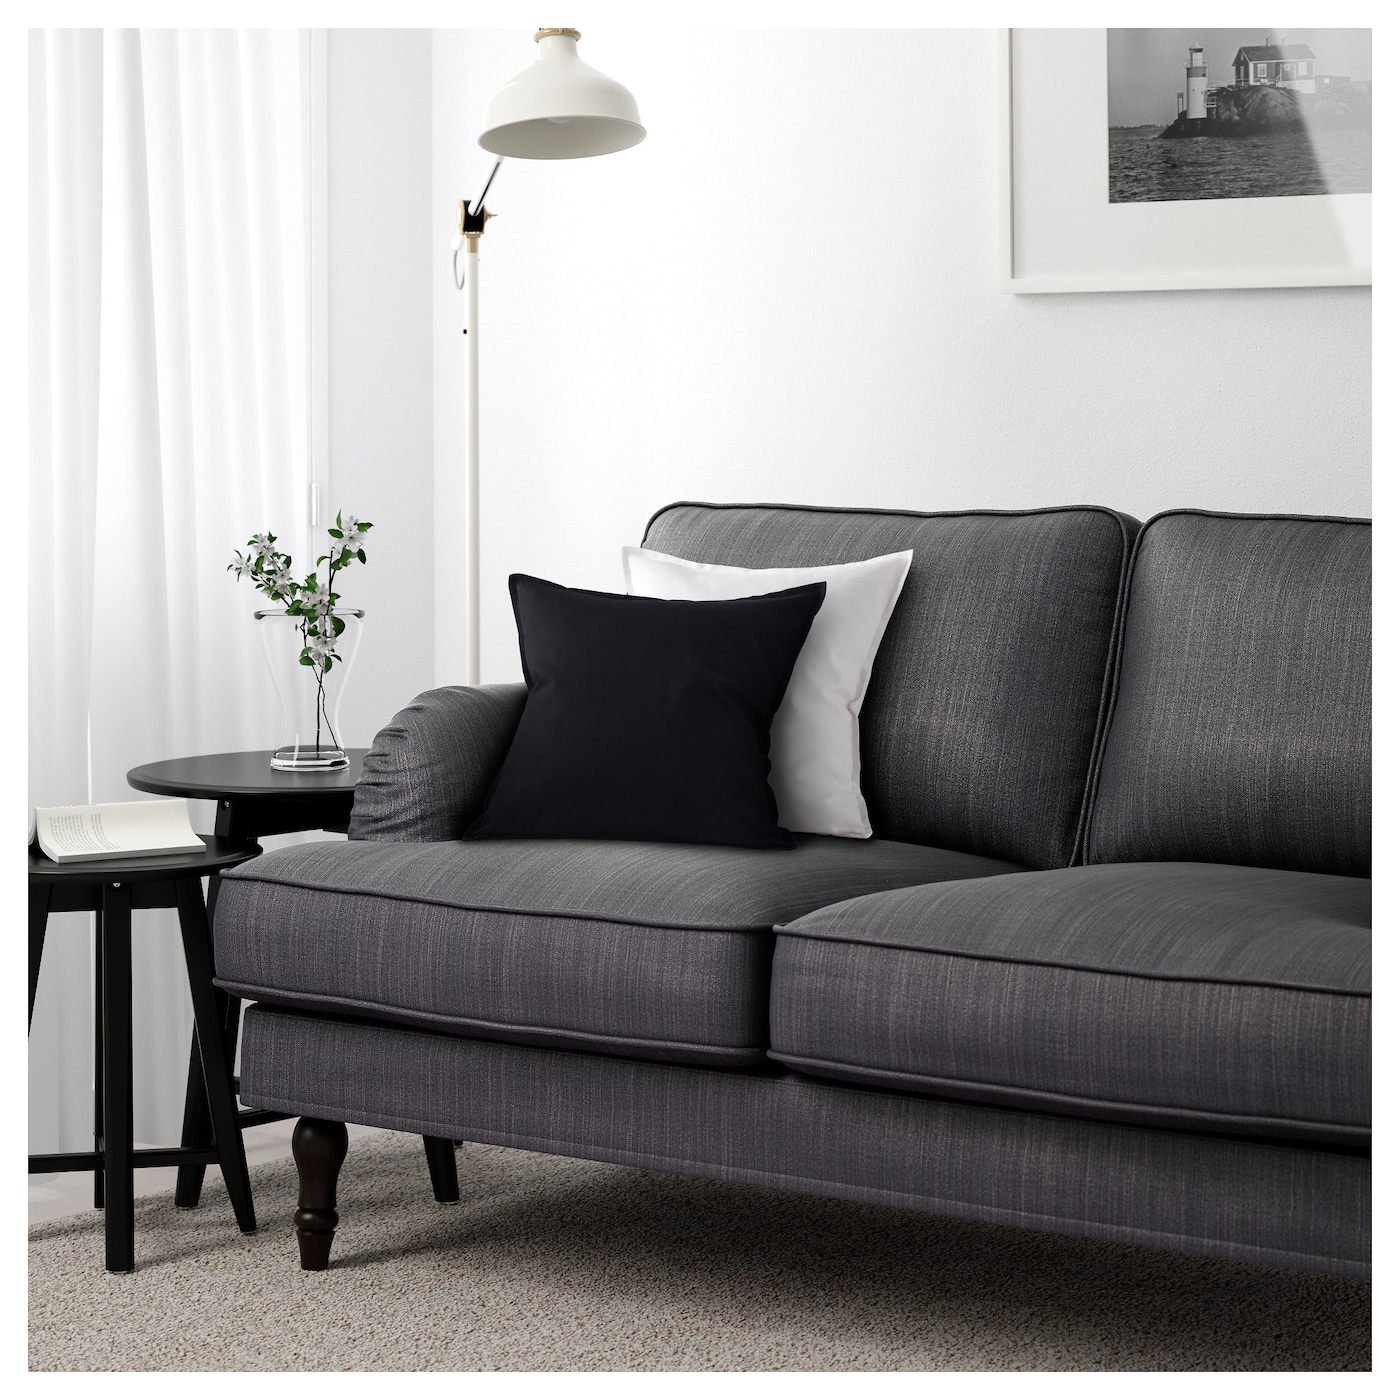 IKEA STOCKSUND two-seat sofa 10 year guarantee. Read about the terms in the guarantee brochure.